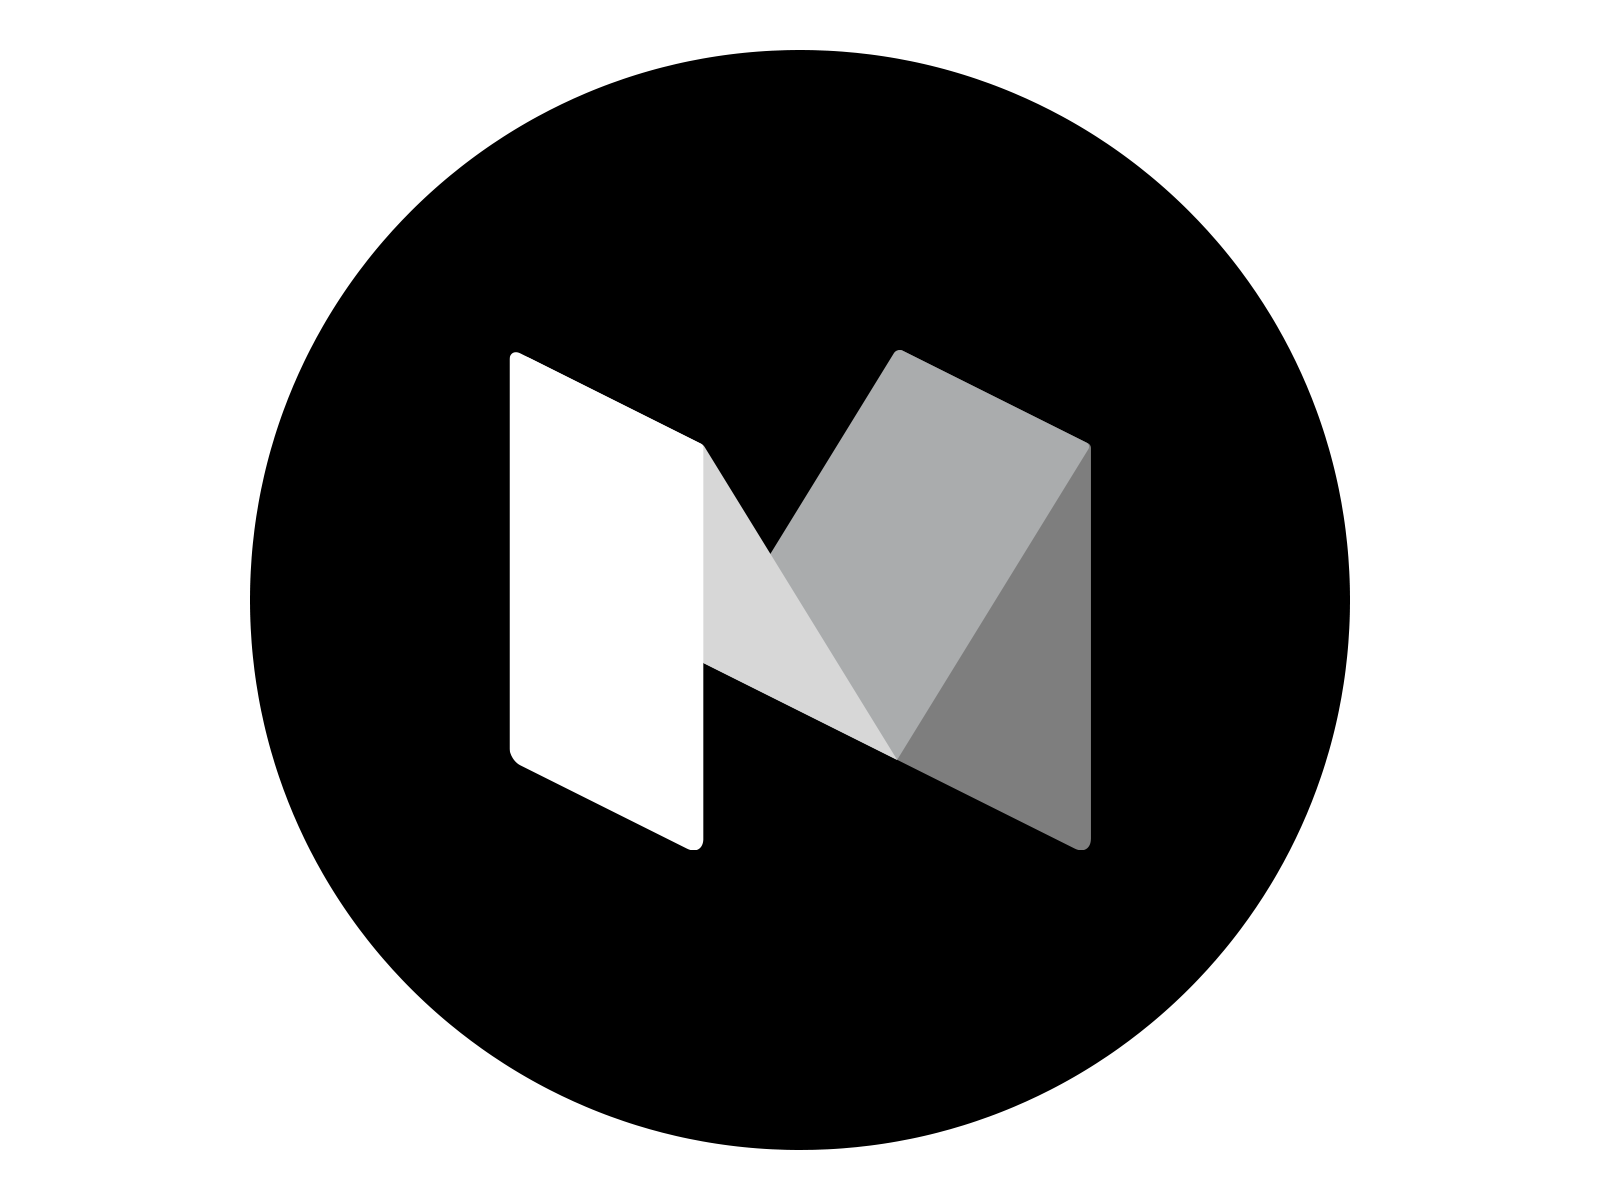 Medium Logo PNG Transparent & SVG Vector.